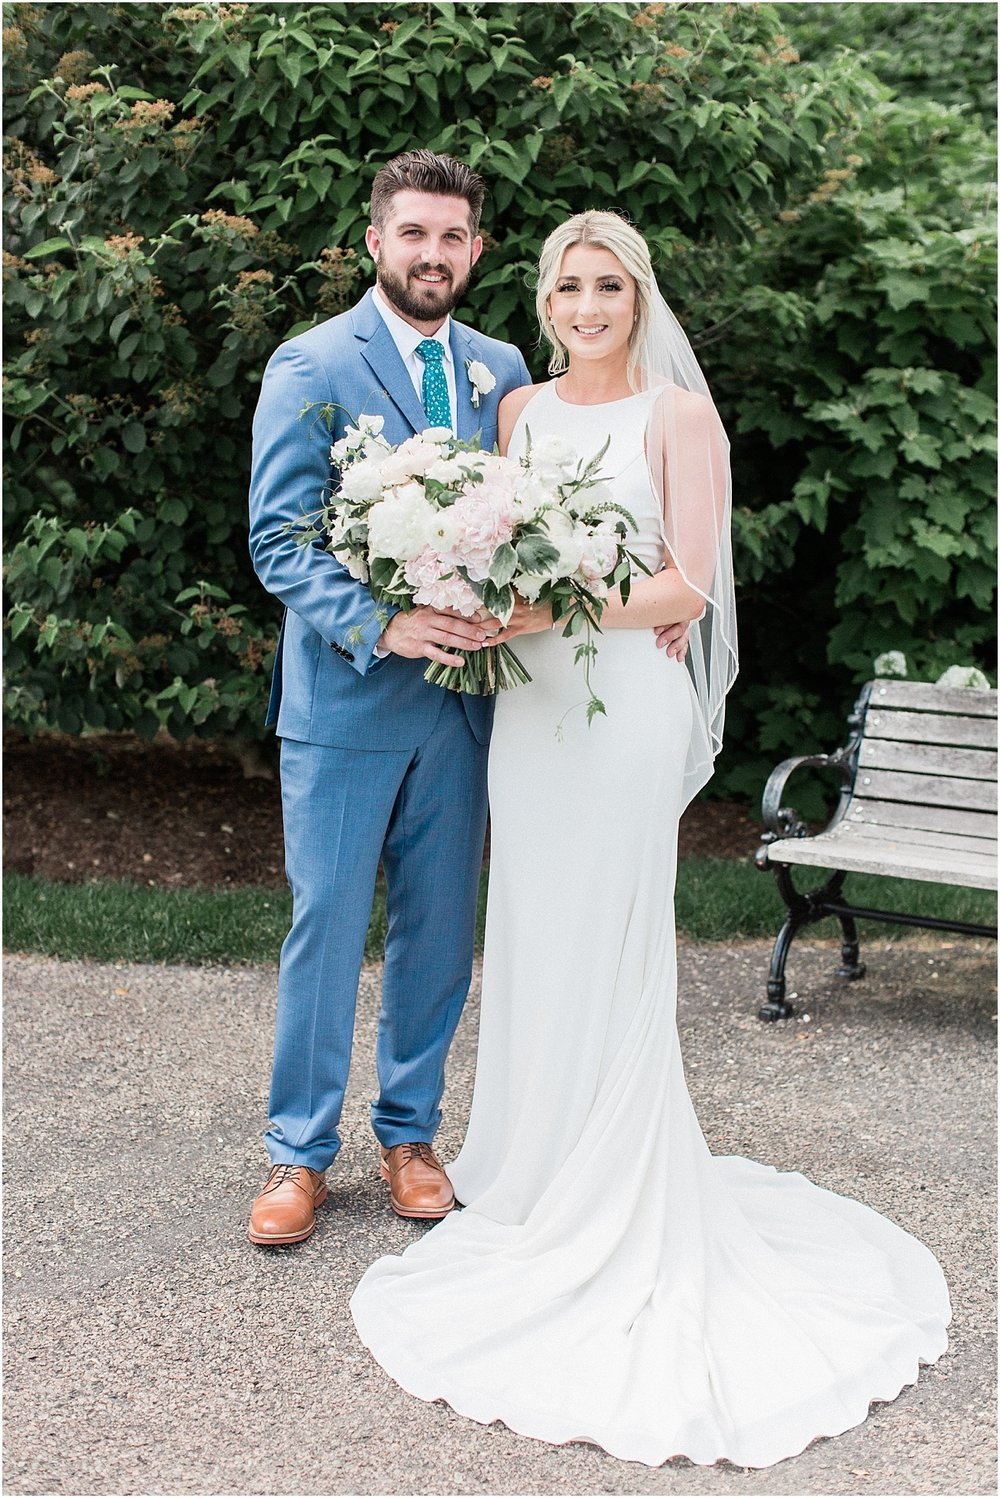 lindsey_paul_indian_pond_country_club_wild_dahlia_brewster_gardens_plymouth_cape_cod_boston_wedding_photographer_meredith_jane_photography_photo_0367.jpg